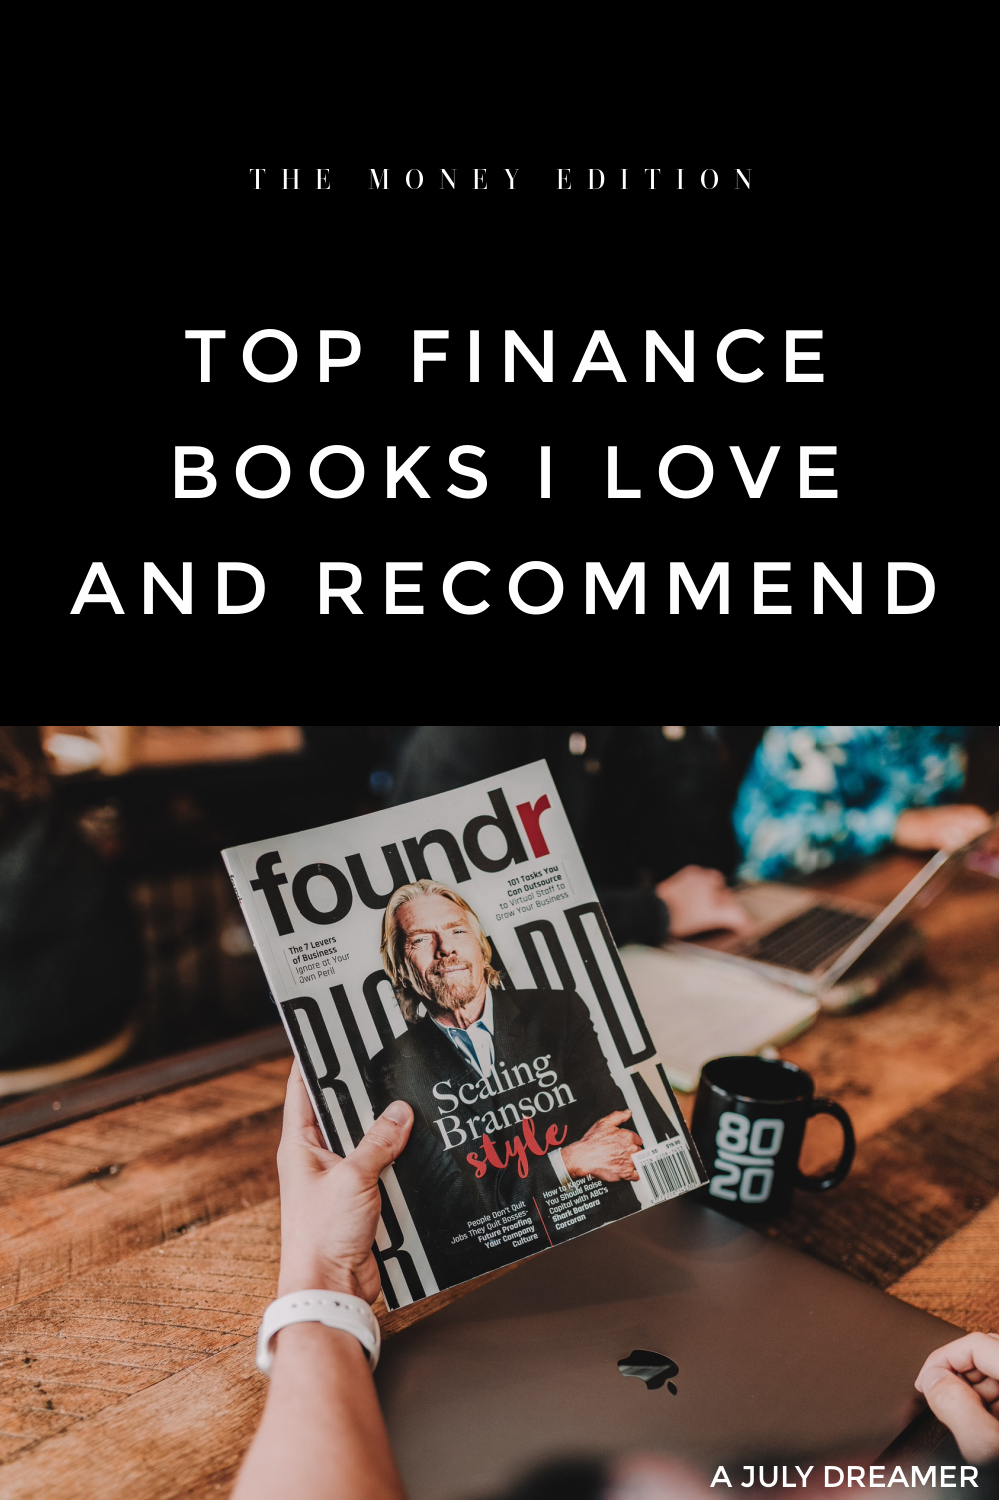 """Because I am tired of hearing people say, """"I am not good with money"""", I am sharing top finance books I love and recommend to people who want to improve their knowledge about money. Rob Moore writes in his book 'Money' that """"money flows from the hands that desire it LEAST into hands that desire it MOST"""", this is one of my favourite quotes about money. Money is not a topic most people are comfortable talking about and this has lead to people continuing to be bad at money management because 'it's not something nice to talk about how much someone earns and its their choice how they spend it'."""